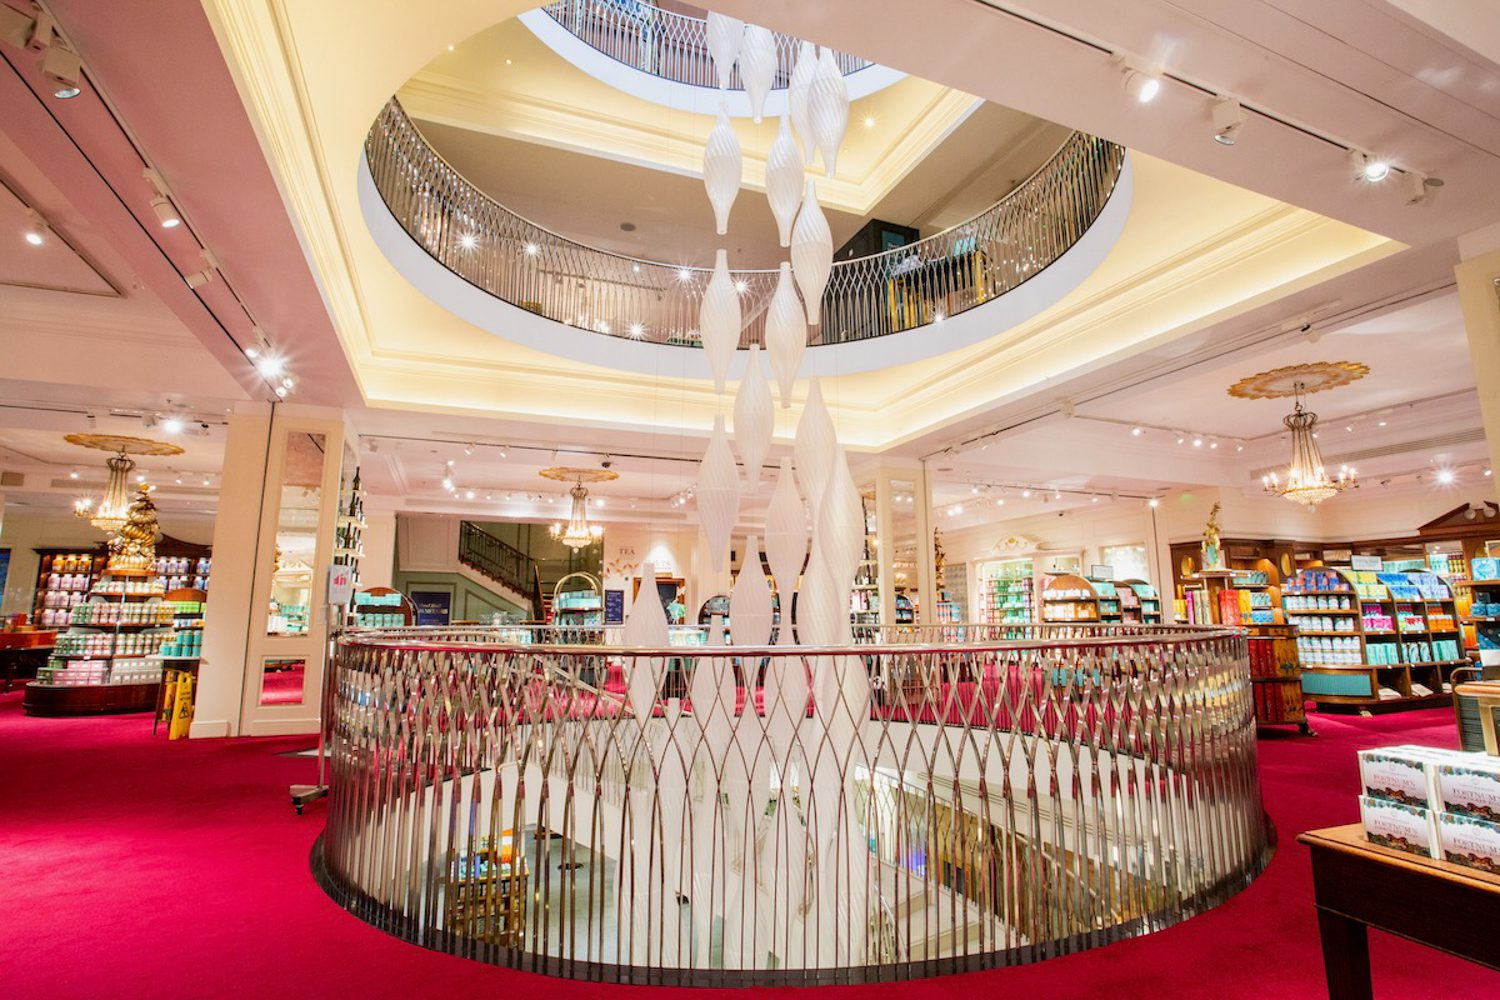 """""""Mellifera: The Dancing Beehives,"""" an installation by Arthur Mamou-Mani at the Fortnum & Masons department store in London during the London Design Festival 2021. Photography by Carmen Valin/courtesy of the London Design Festival."""